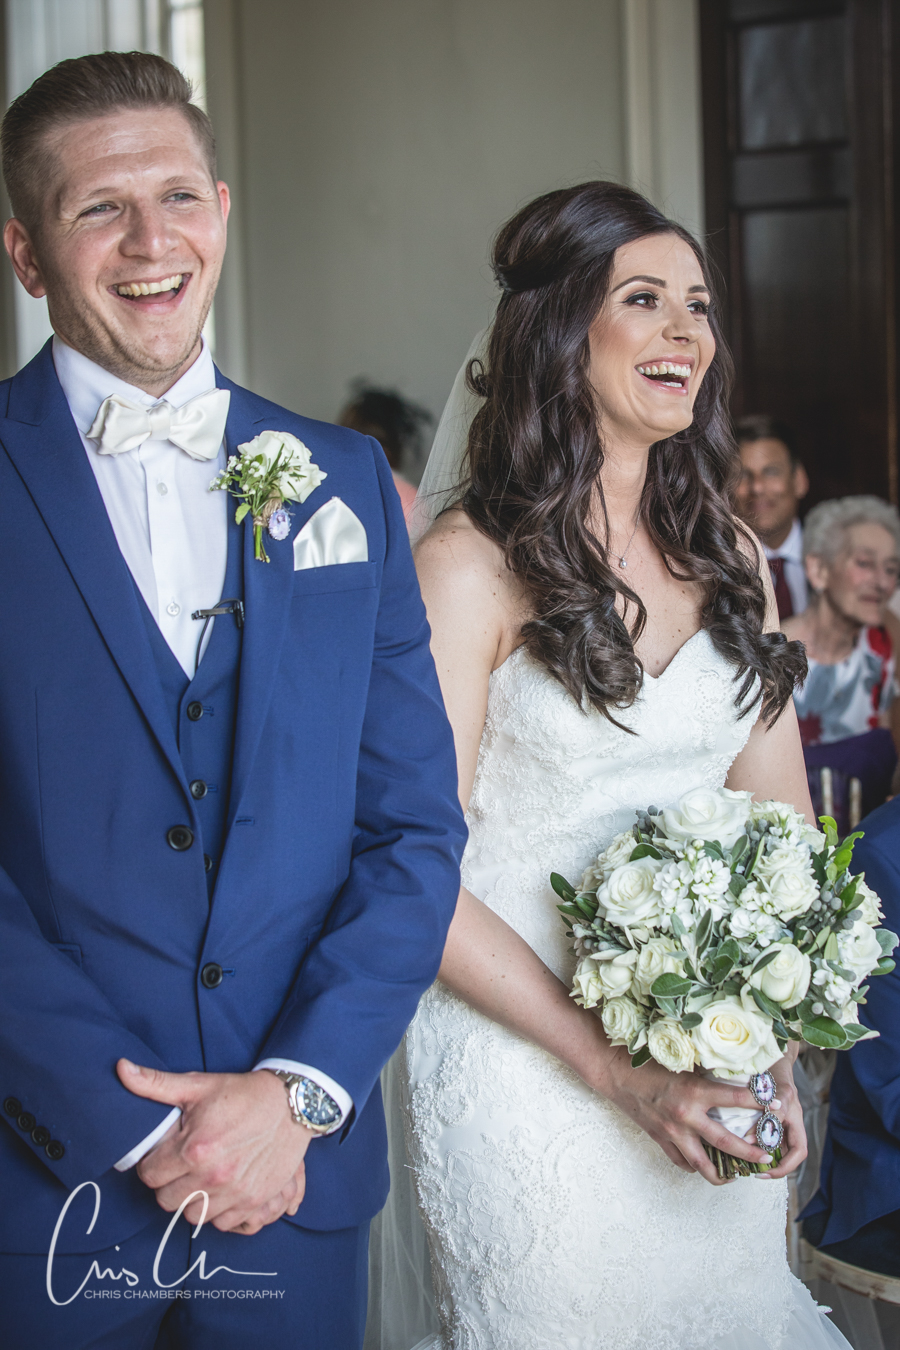 Stubton Hall weddings, wedding photographer Chris Chambers. Wedding photographs at Stubton Hall.